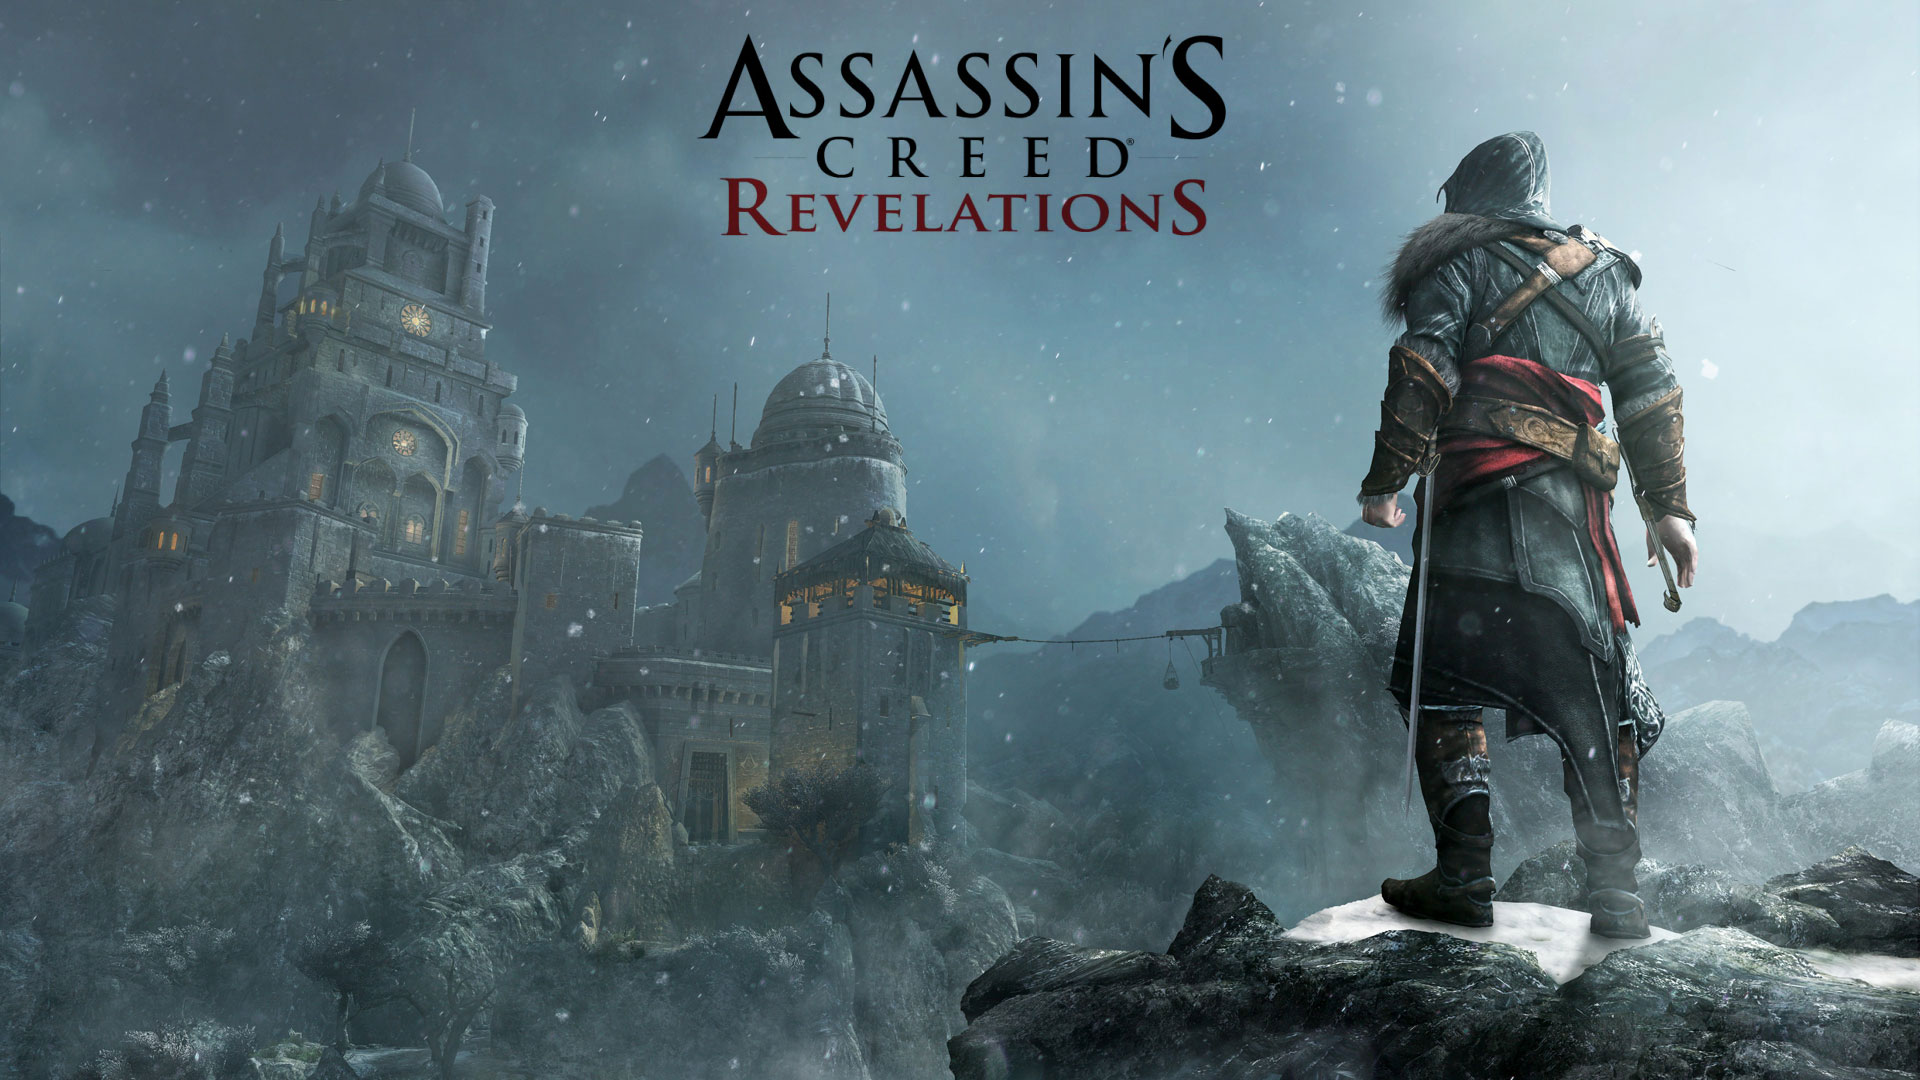 Assassins Creed Revelations HD Pictures ImageBankbiz 1920x1080